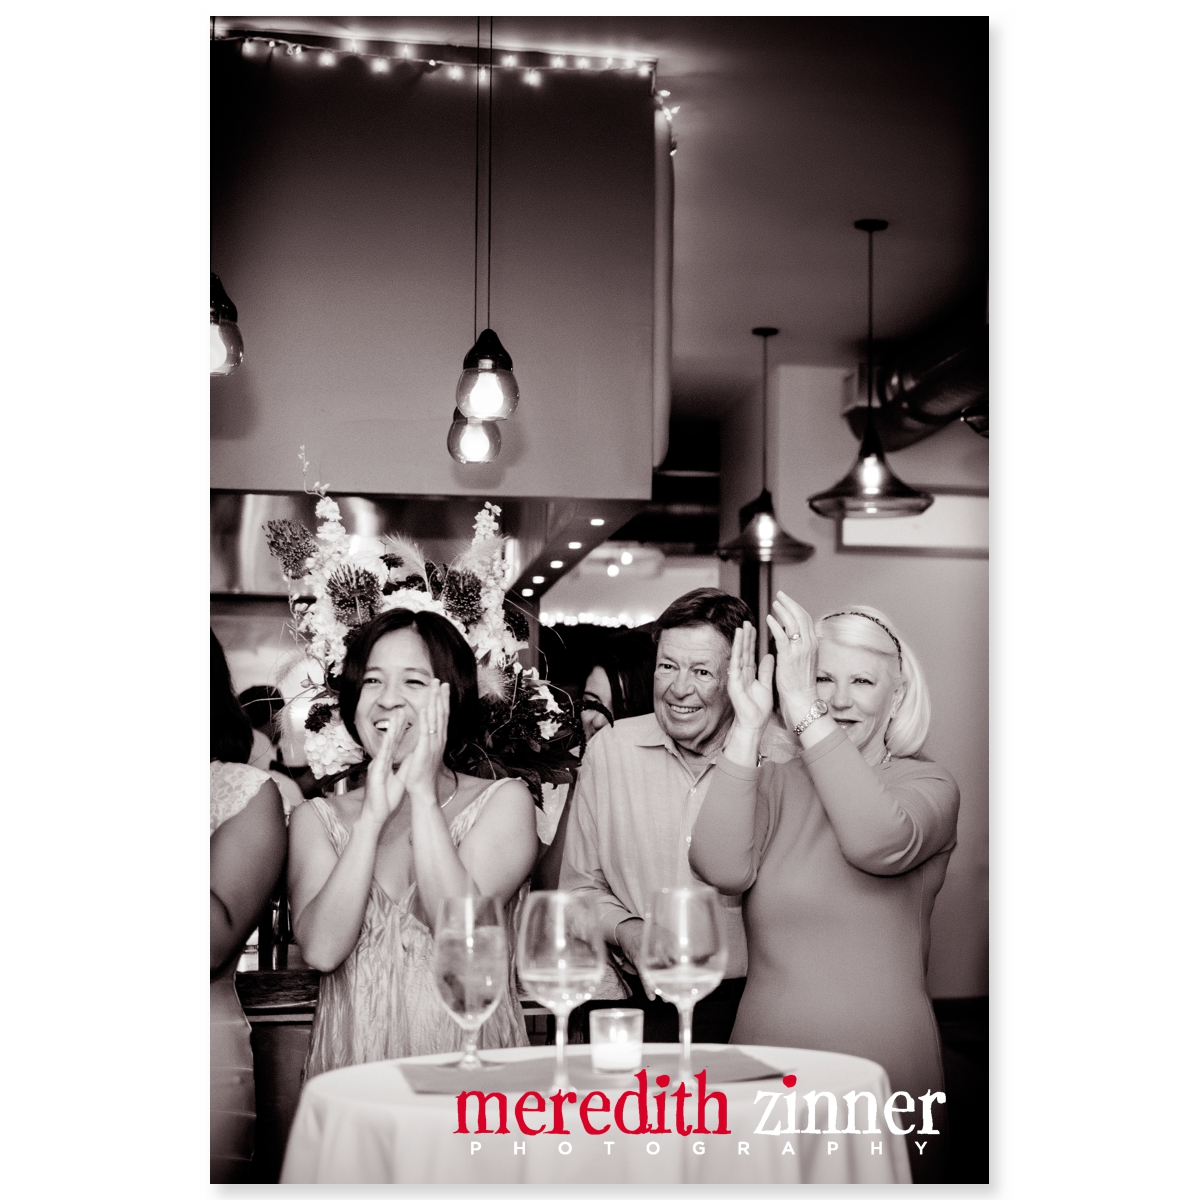 Meredith_Zinner_Photography_StilesCelebration_0317